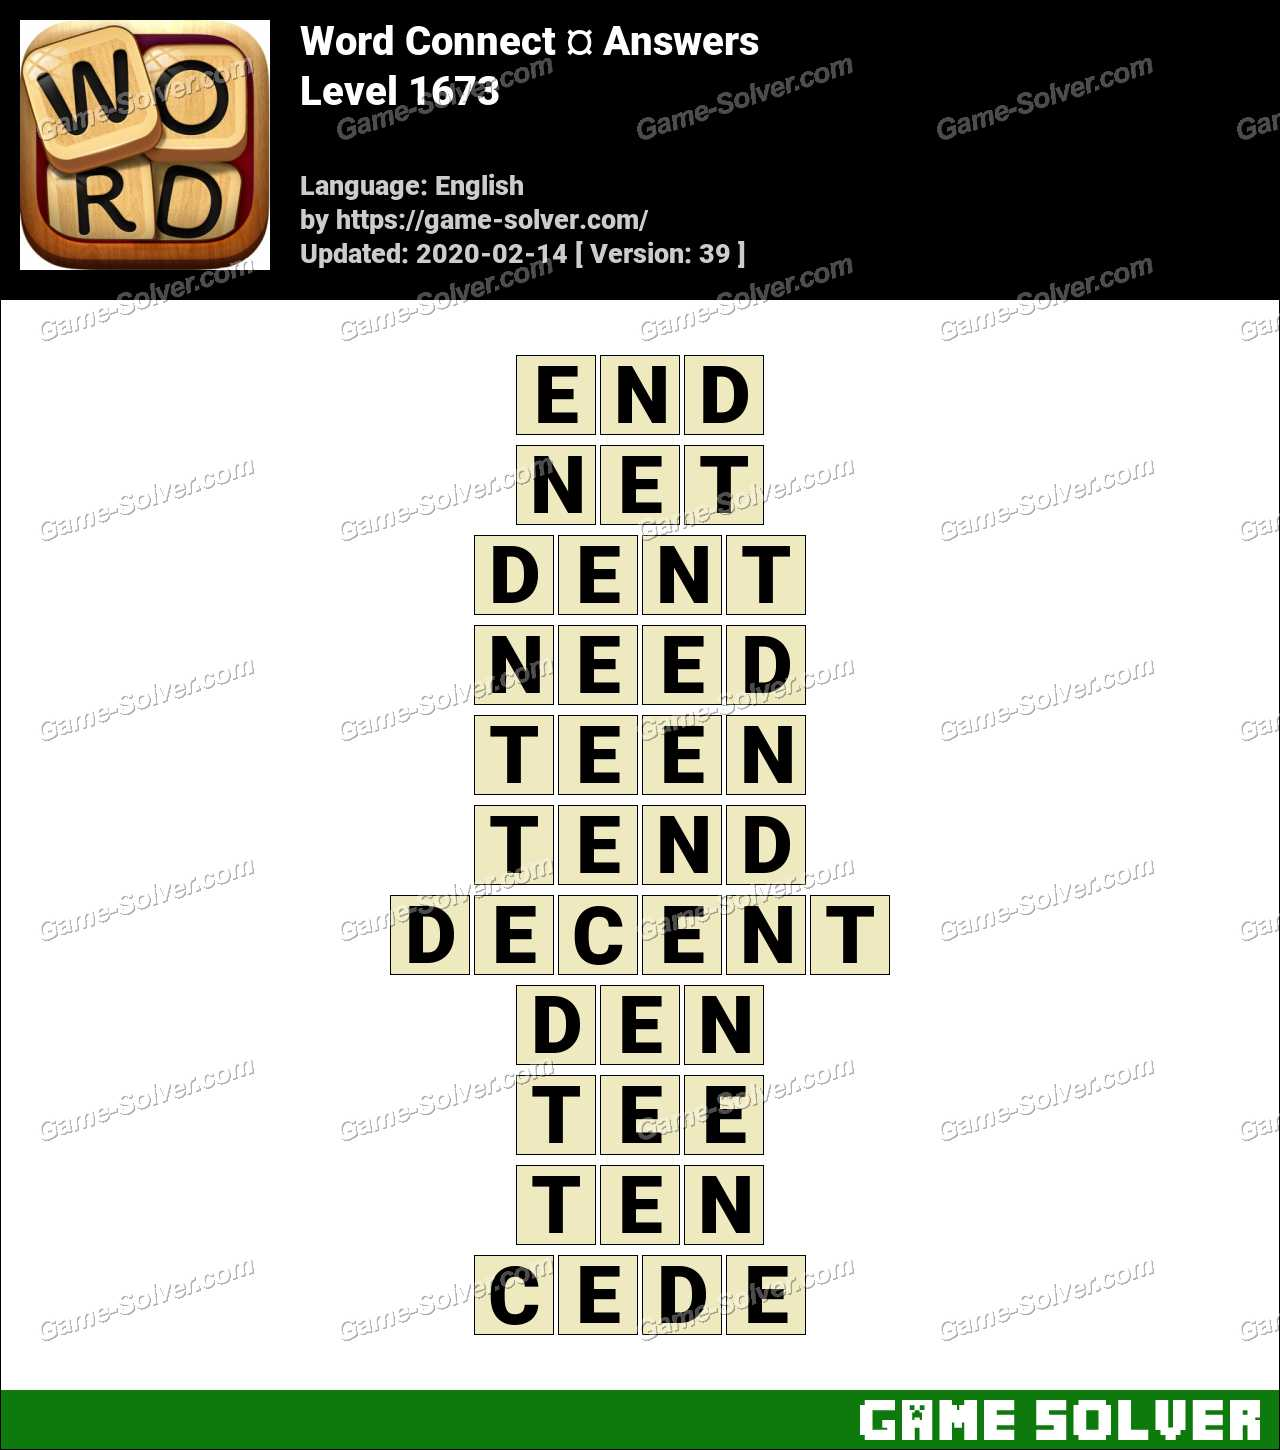 Word Connect Level 1673 Answers